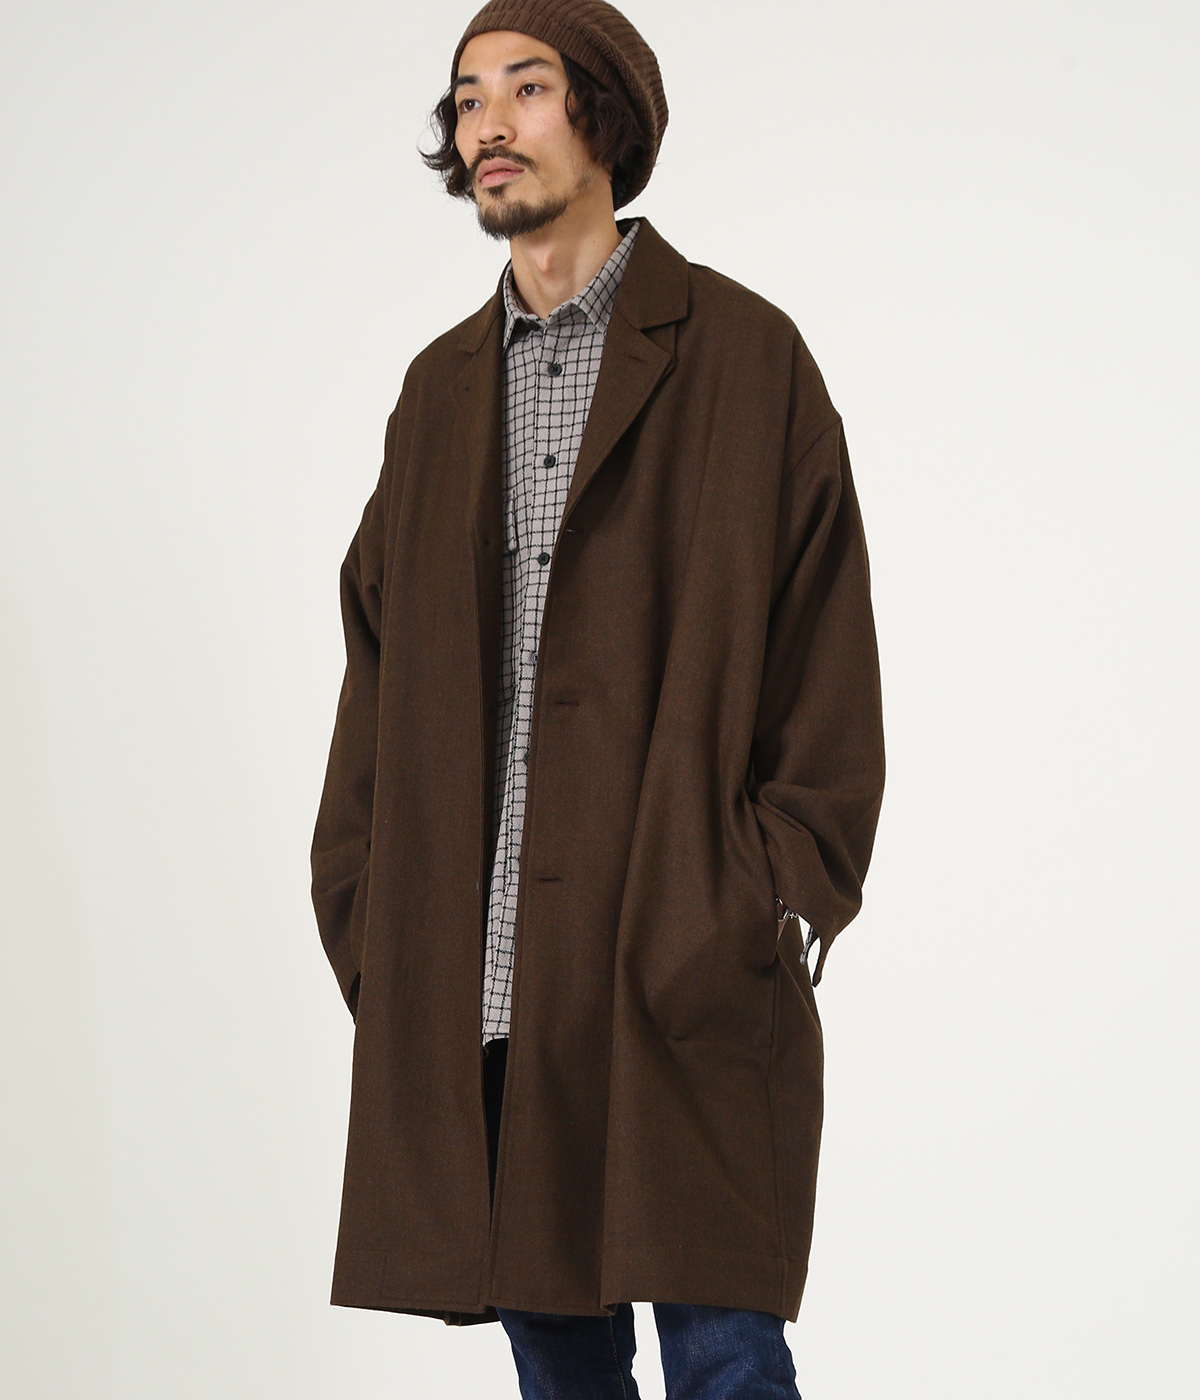 【予約】SHIRT COAT - wool soft serge -